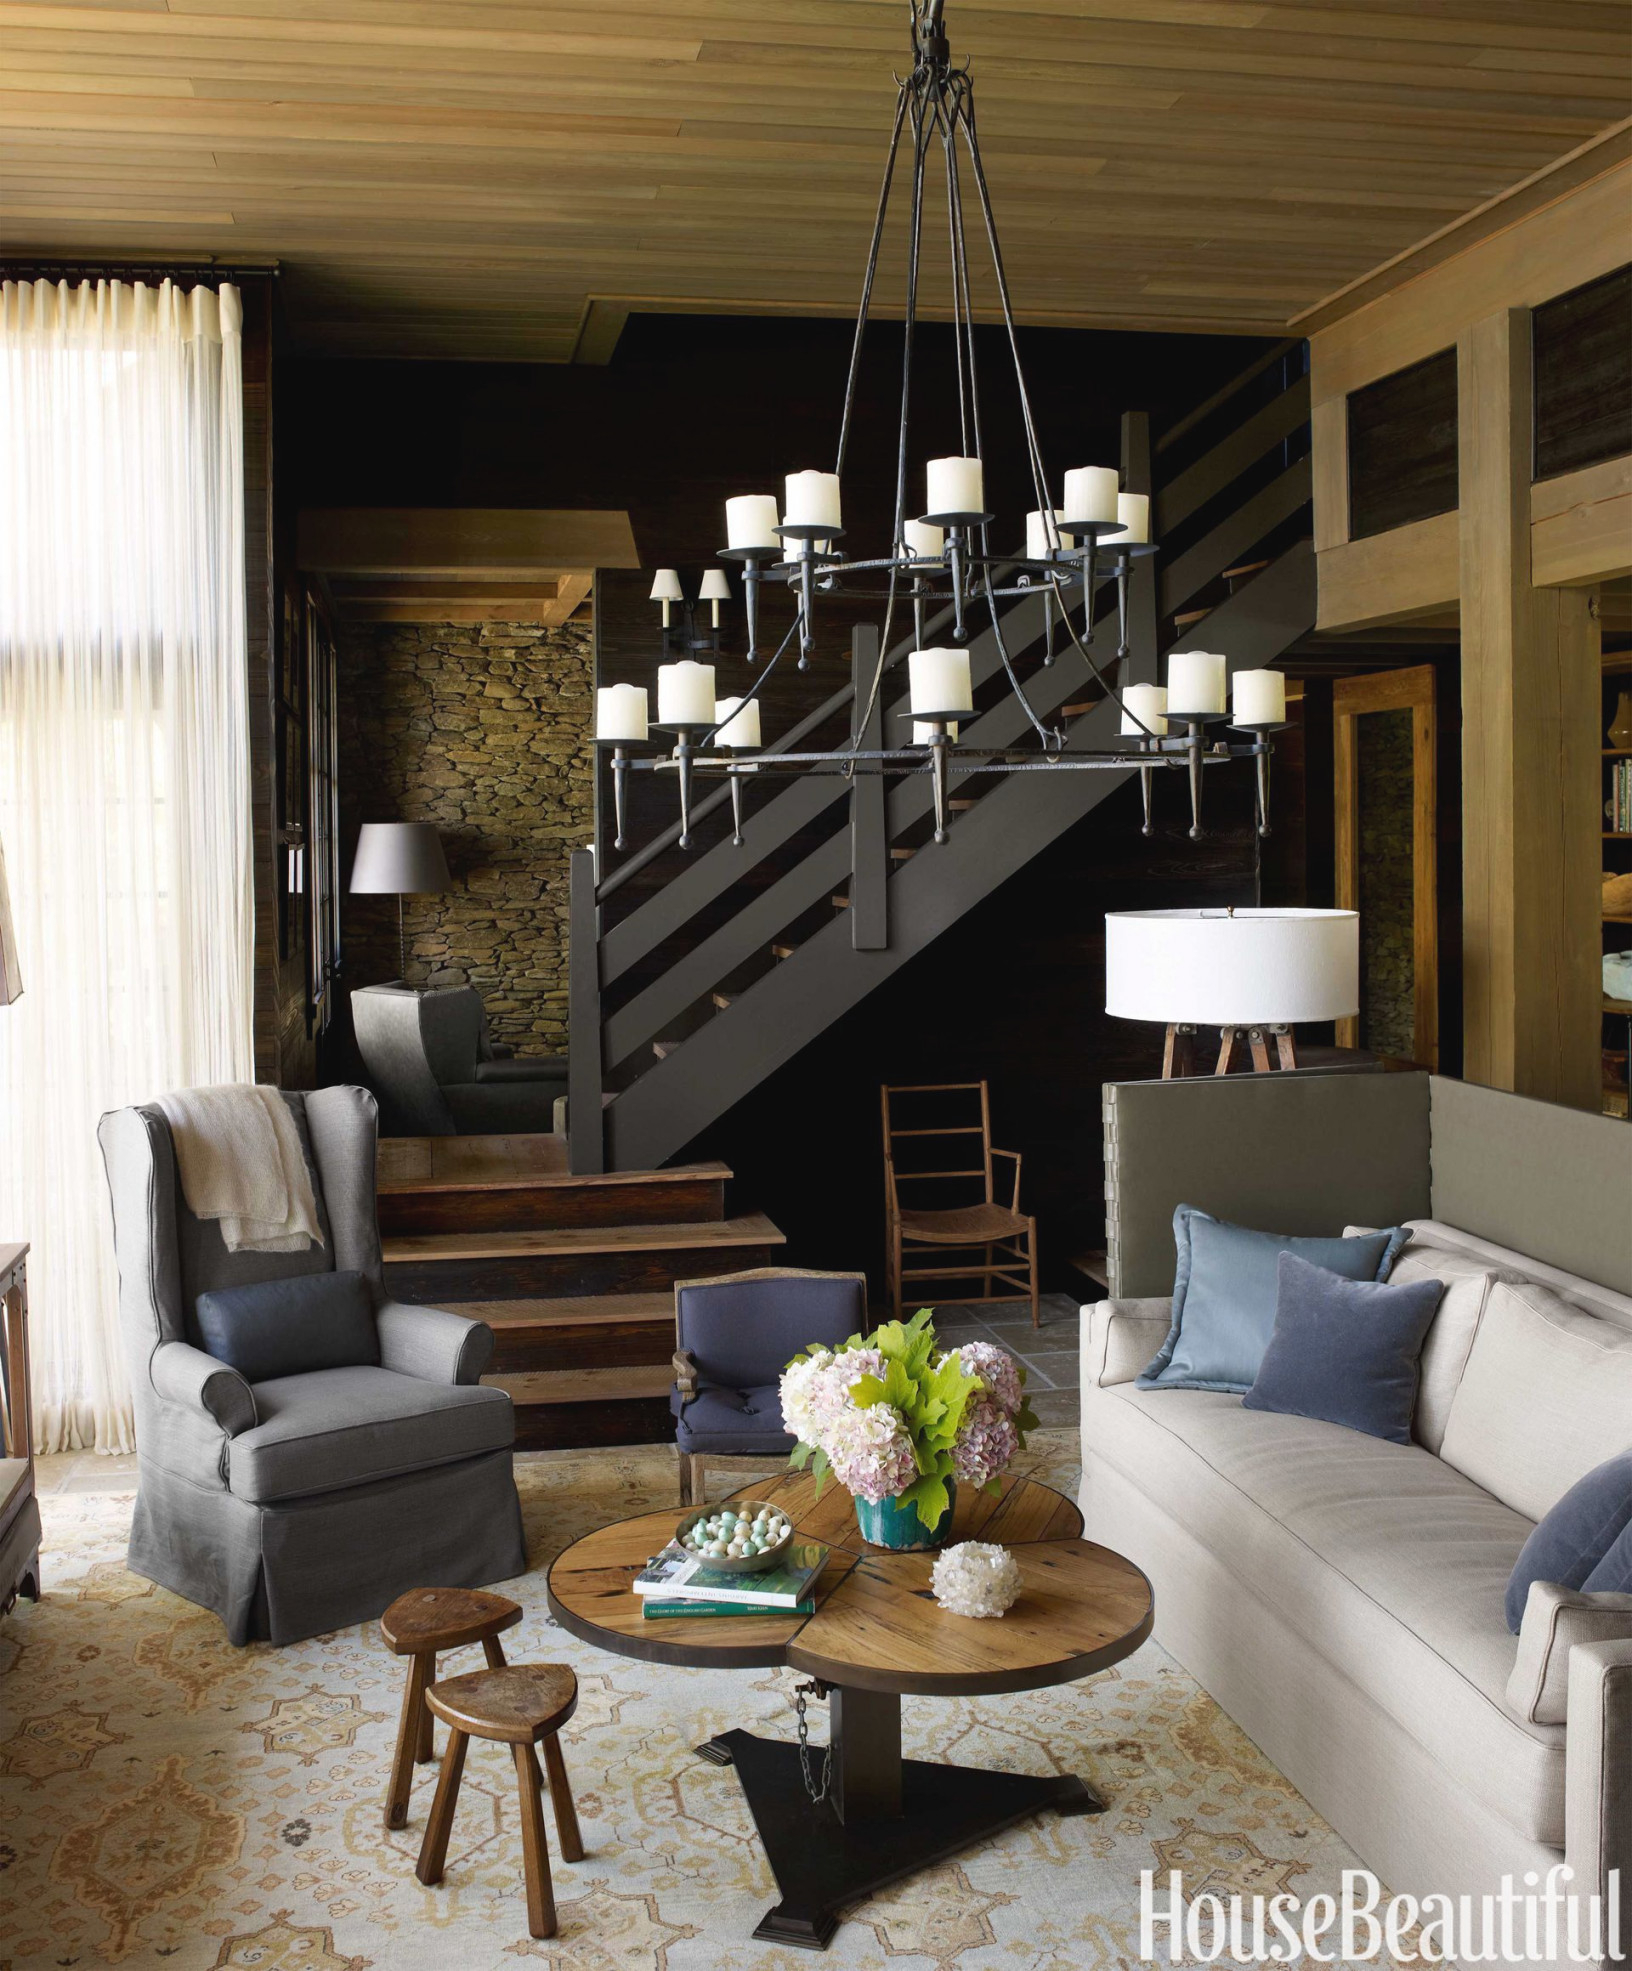 35 Best Living Room Color Ideas – Top Paint Colors For with regard to Awesome Inspiration For Wall Paint Colors For Living Room